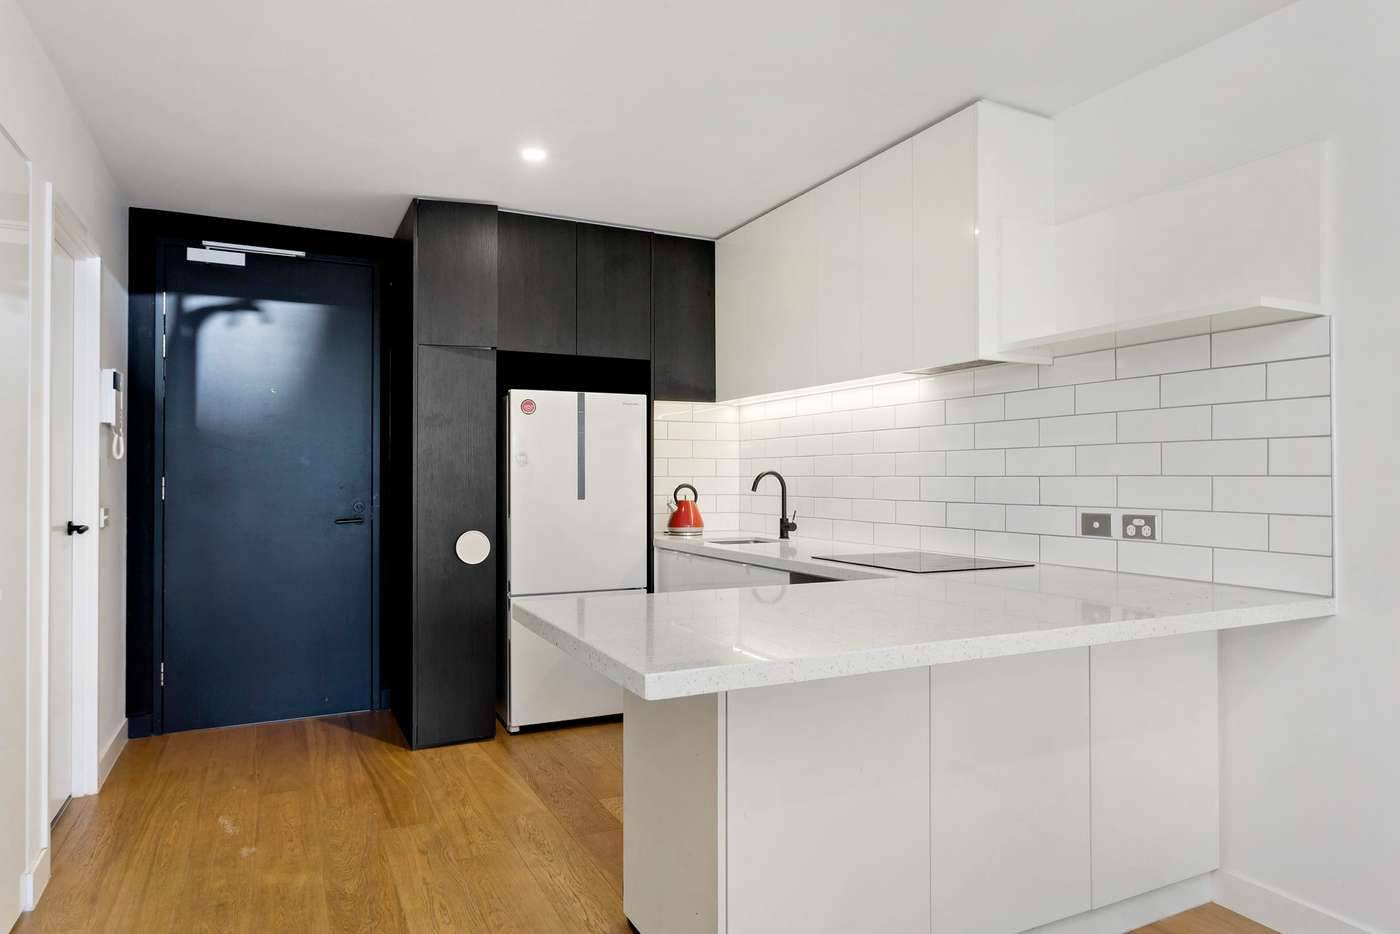 Sixth view of Homely apartment listing, 611/83 Flemington Road, North Melbourne VIC 3051